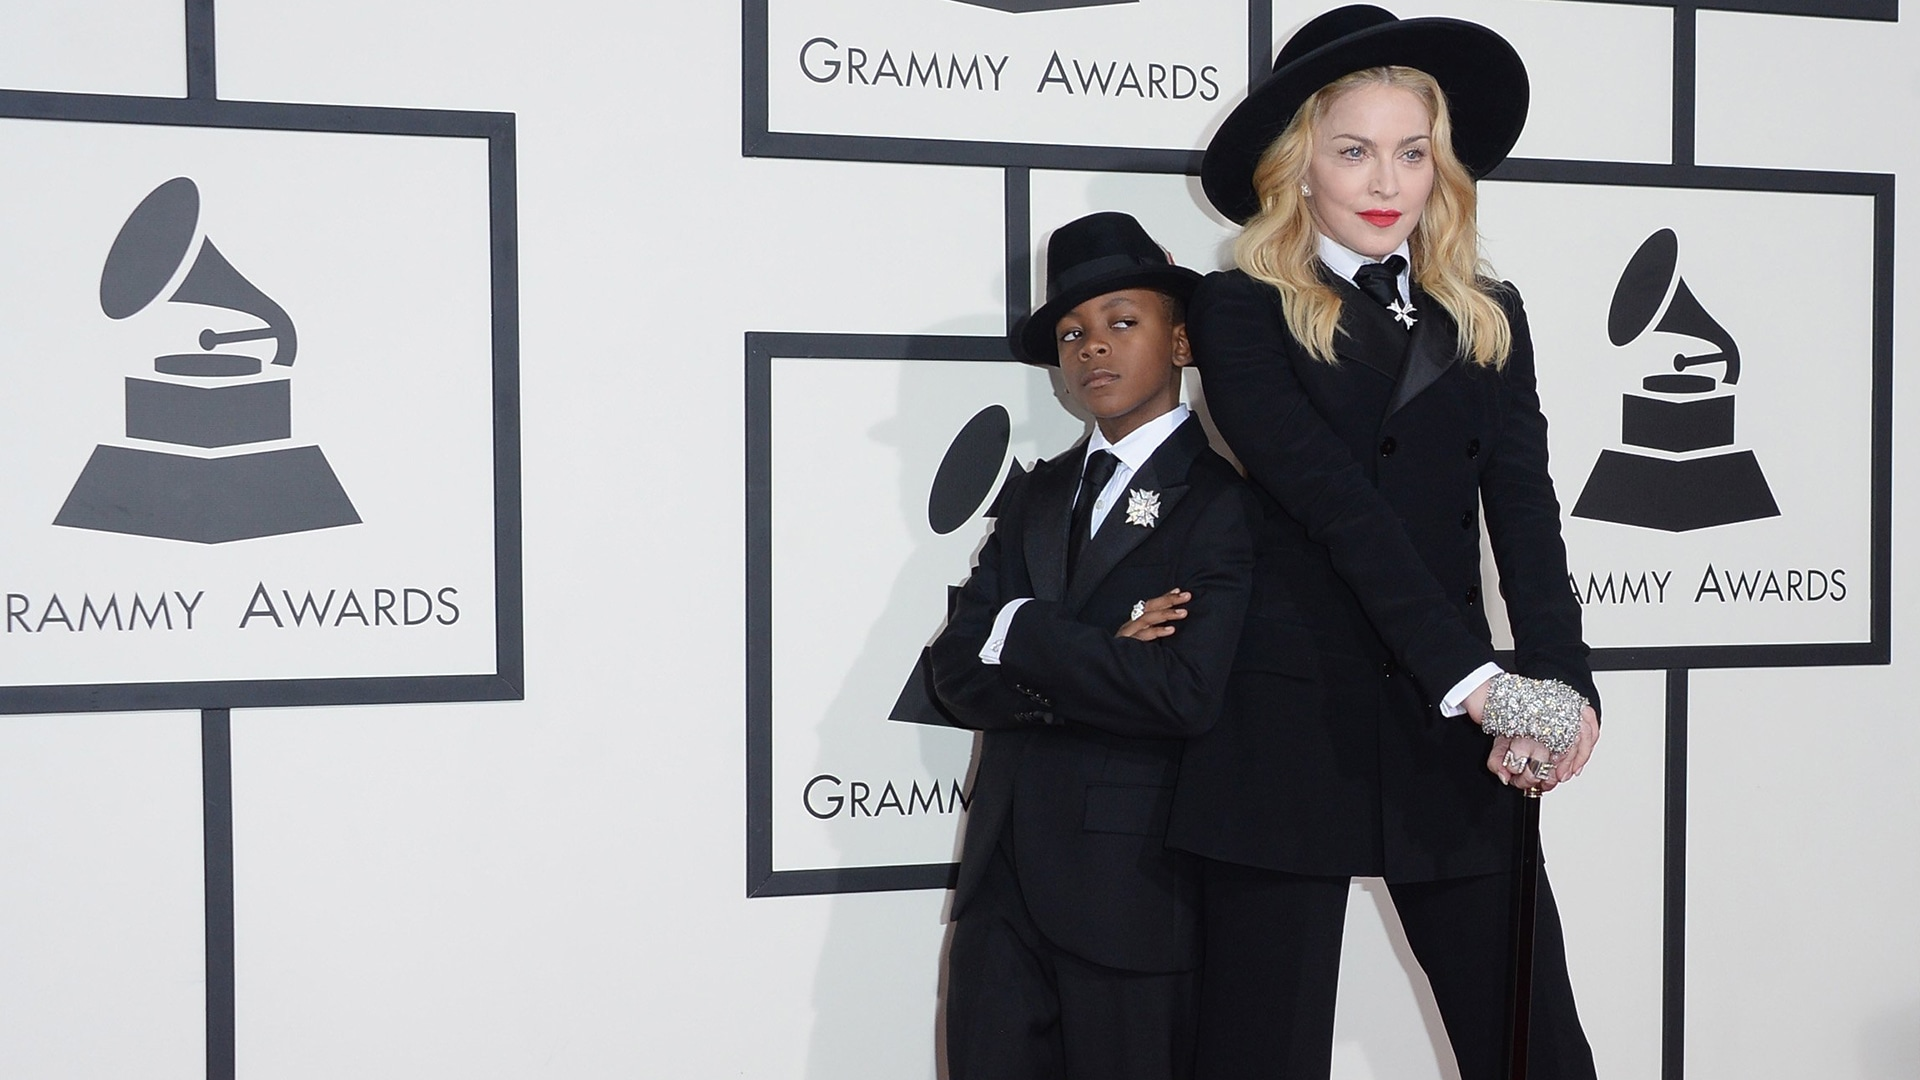 Image: 56th GRAMMY Awards - Arrivals